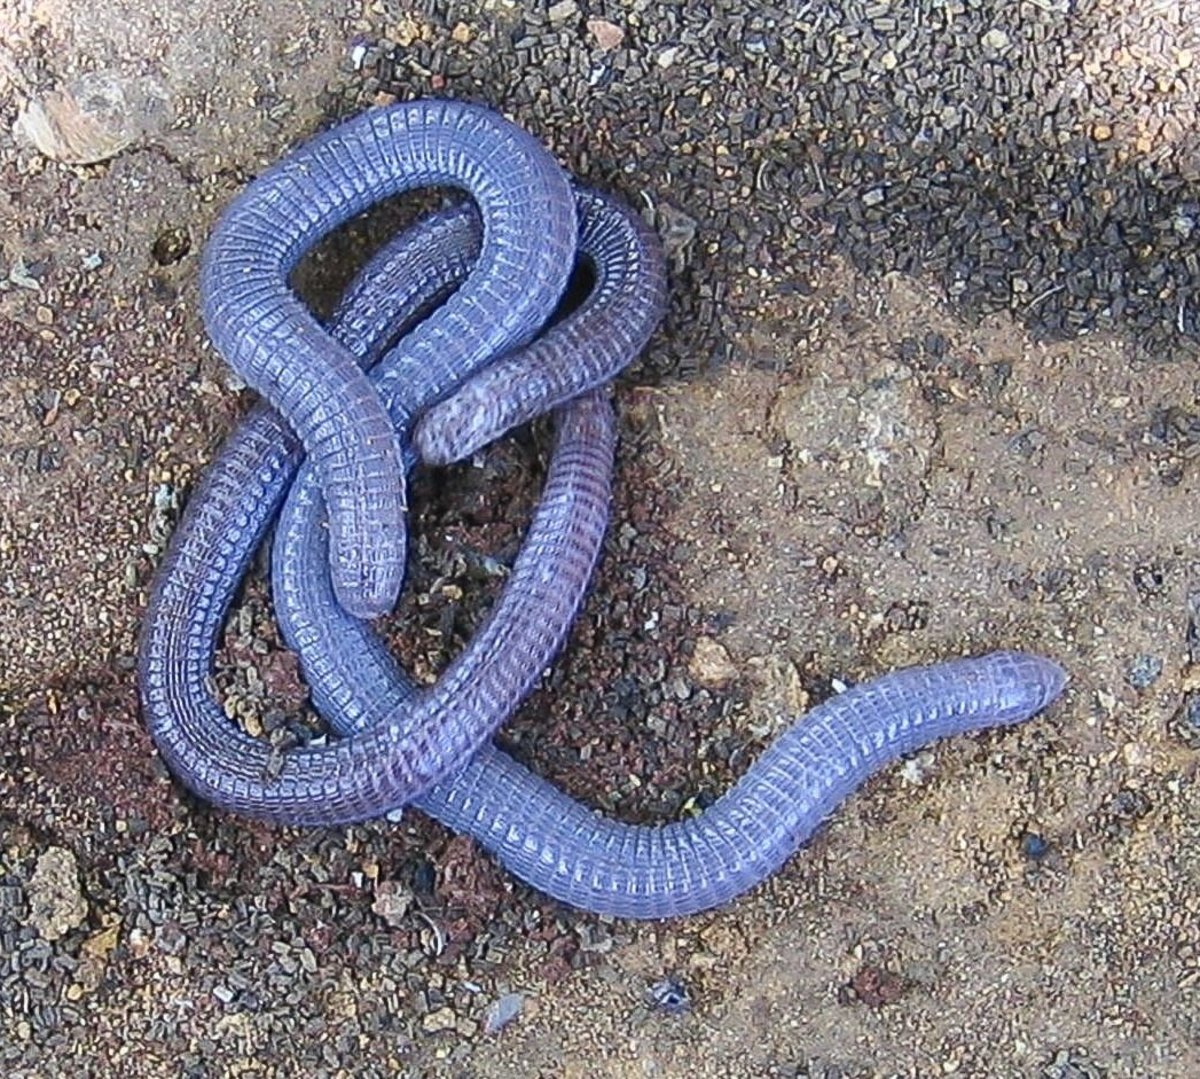 Mole and Worm Lizards: Unusual and Interesting Reptiles